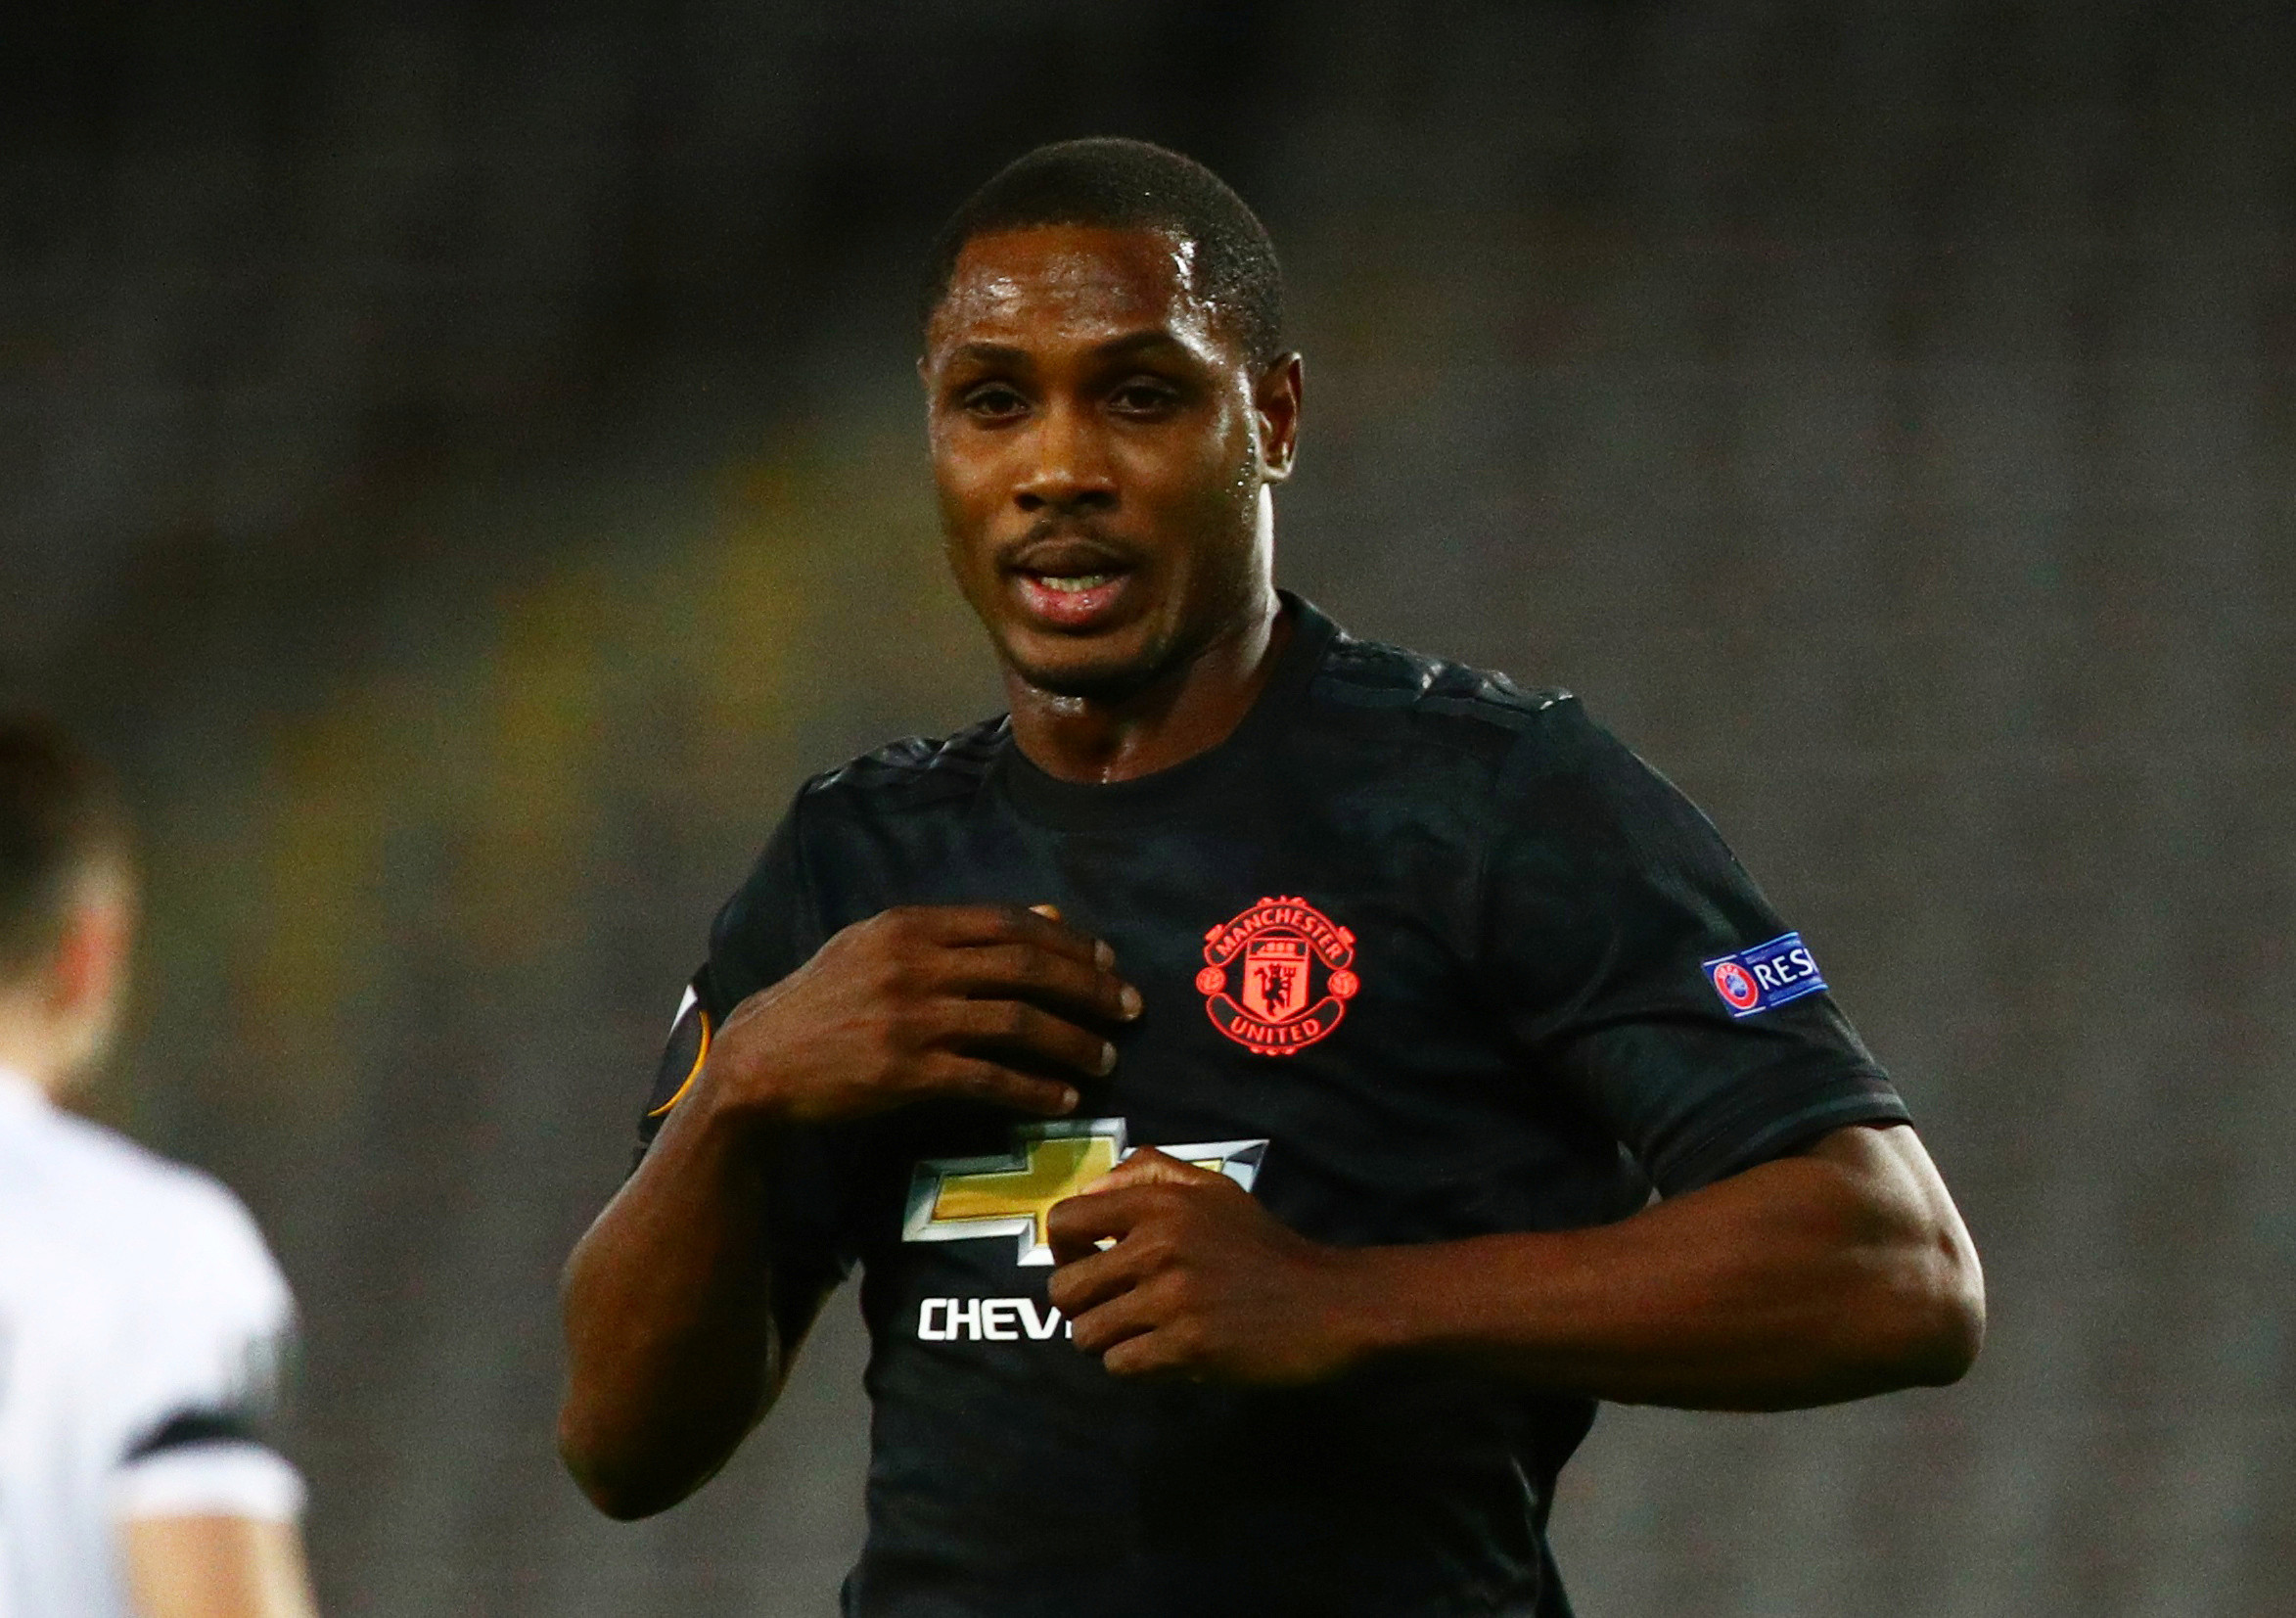 Odion Ighalo reveals class message from Arsenal legend Nwankwo Kanu after Manchester United move - Bóng Đá